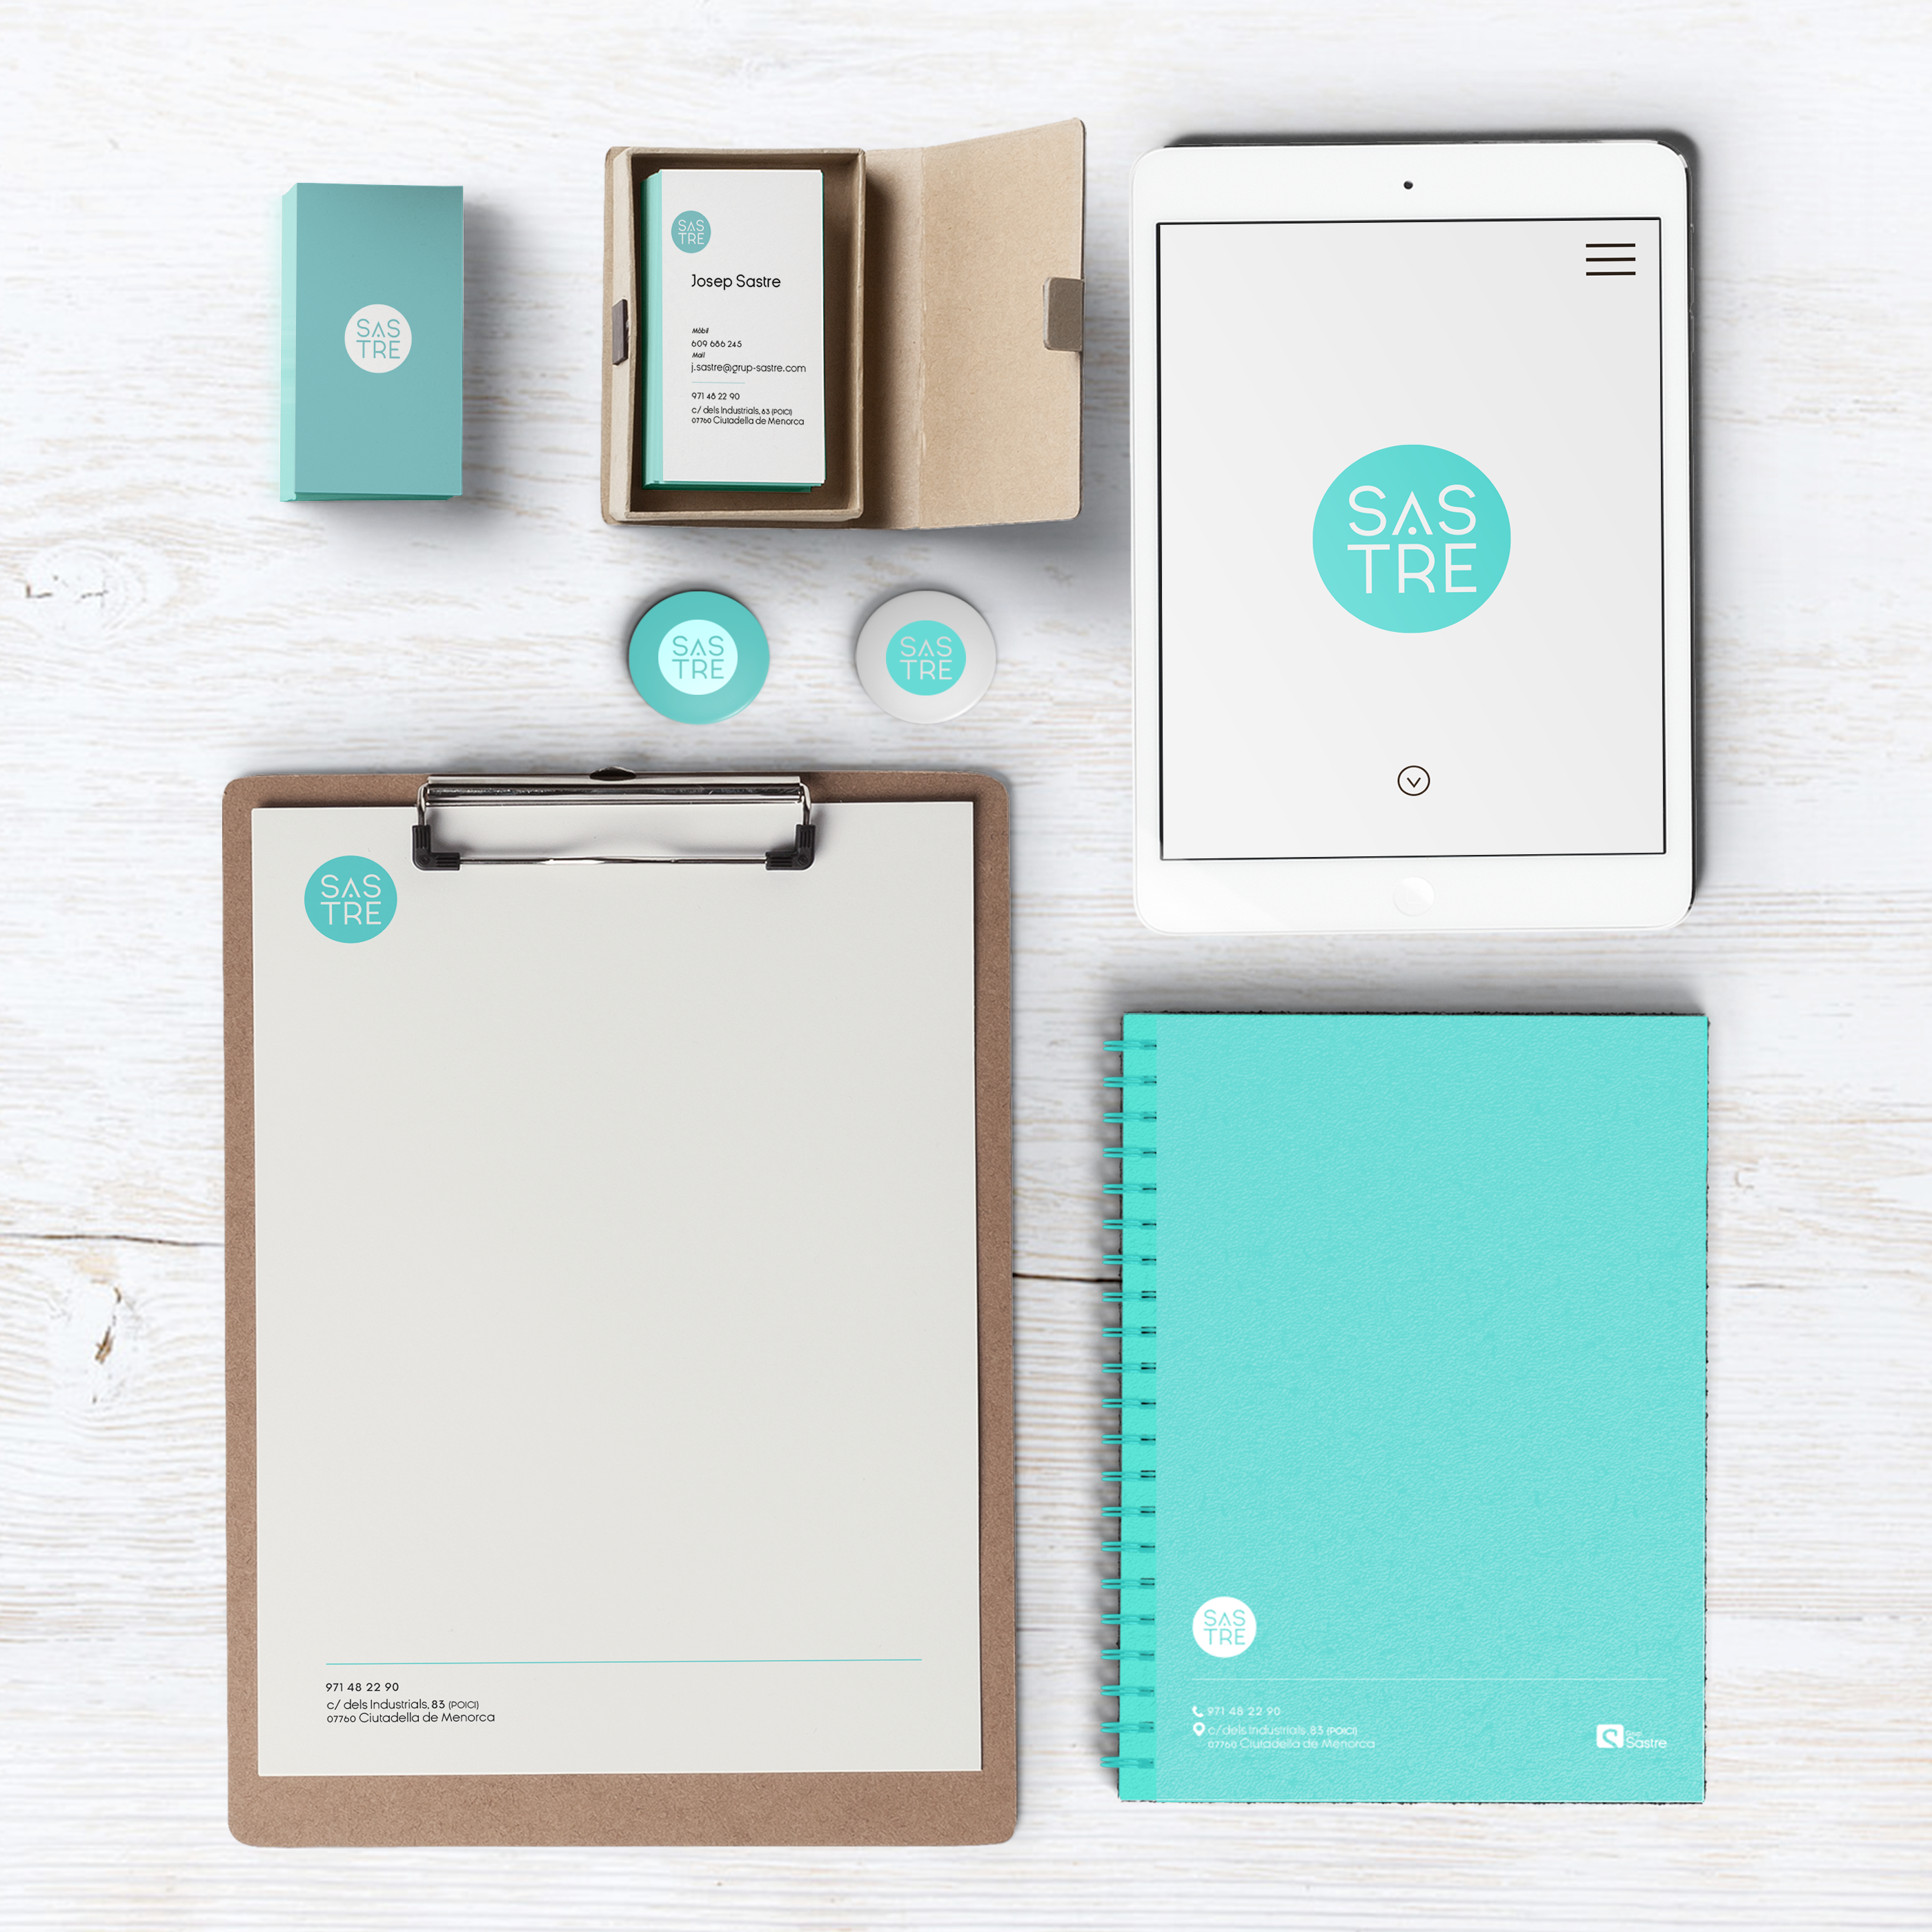 https://auppa.com/wp-content/uploads/2019/09/stationery-sastre.png